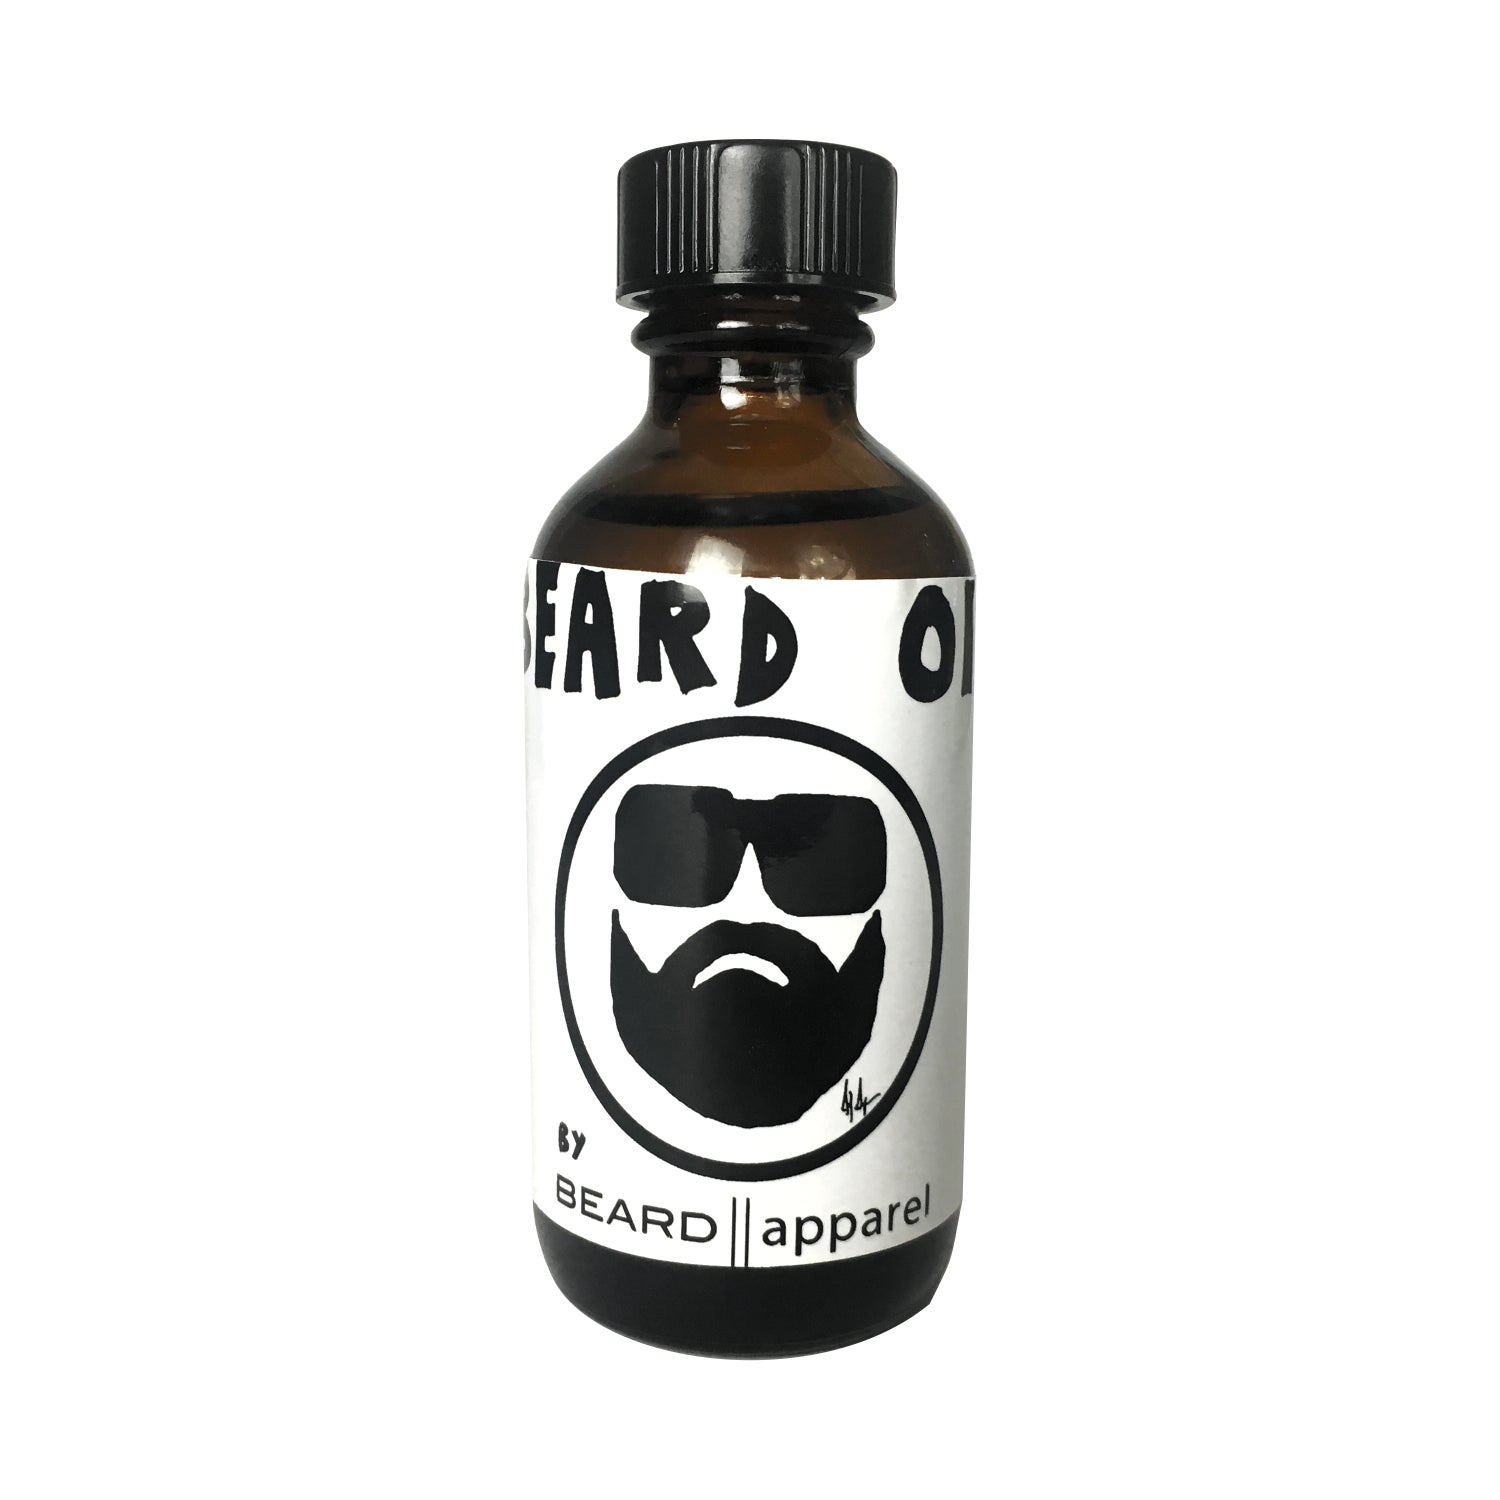 Image of Beard Apparel Beard Oil!